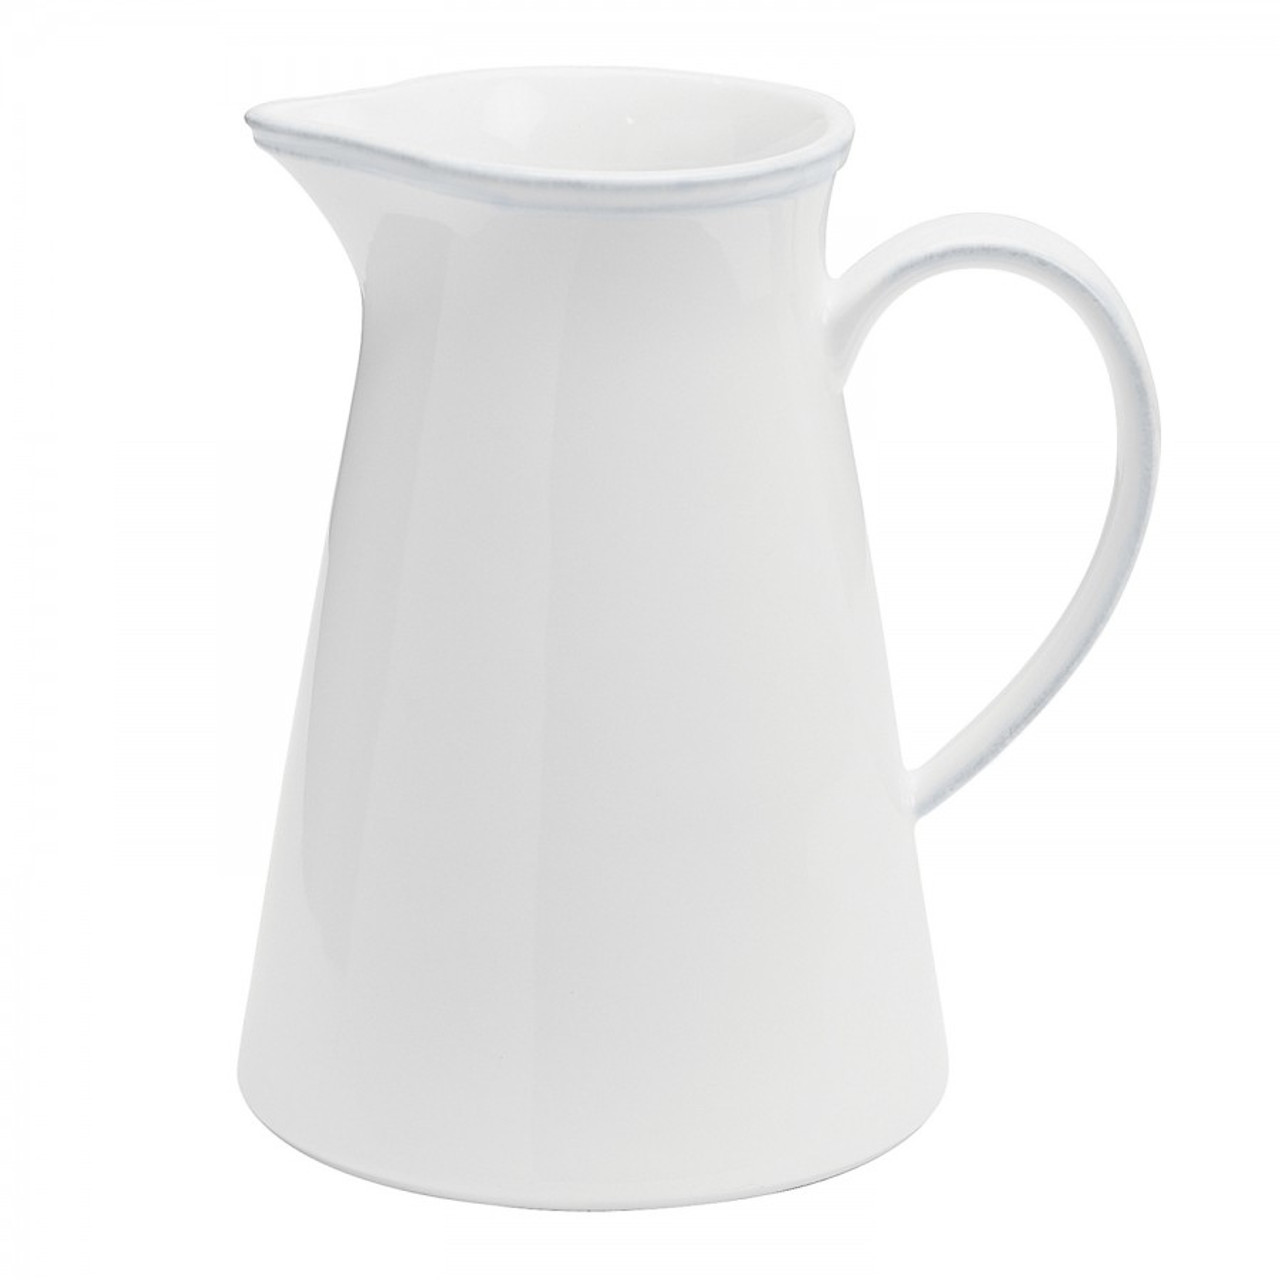 FRISO PITCHER 2L - WHITE